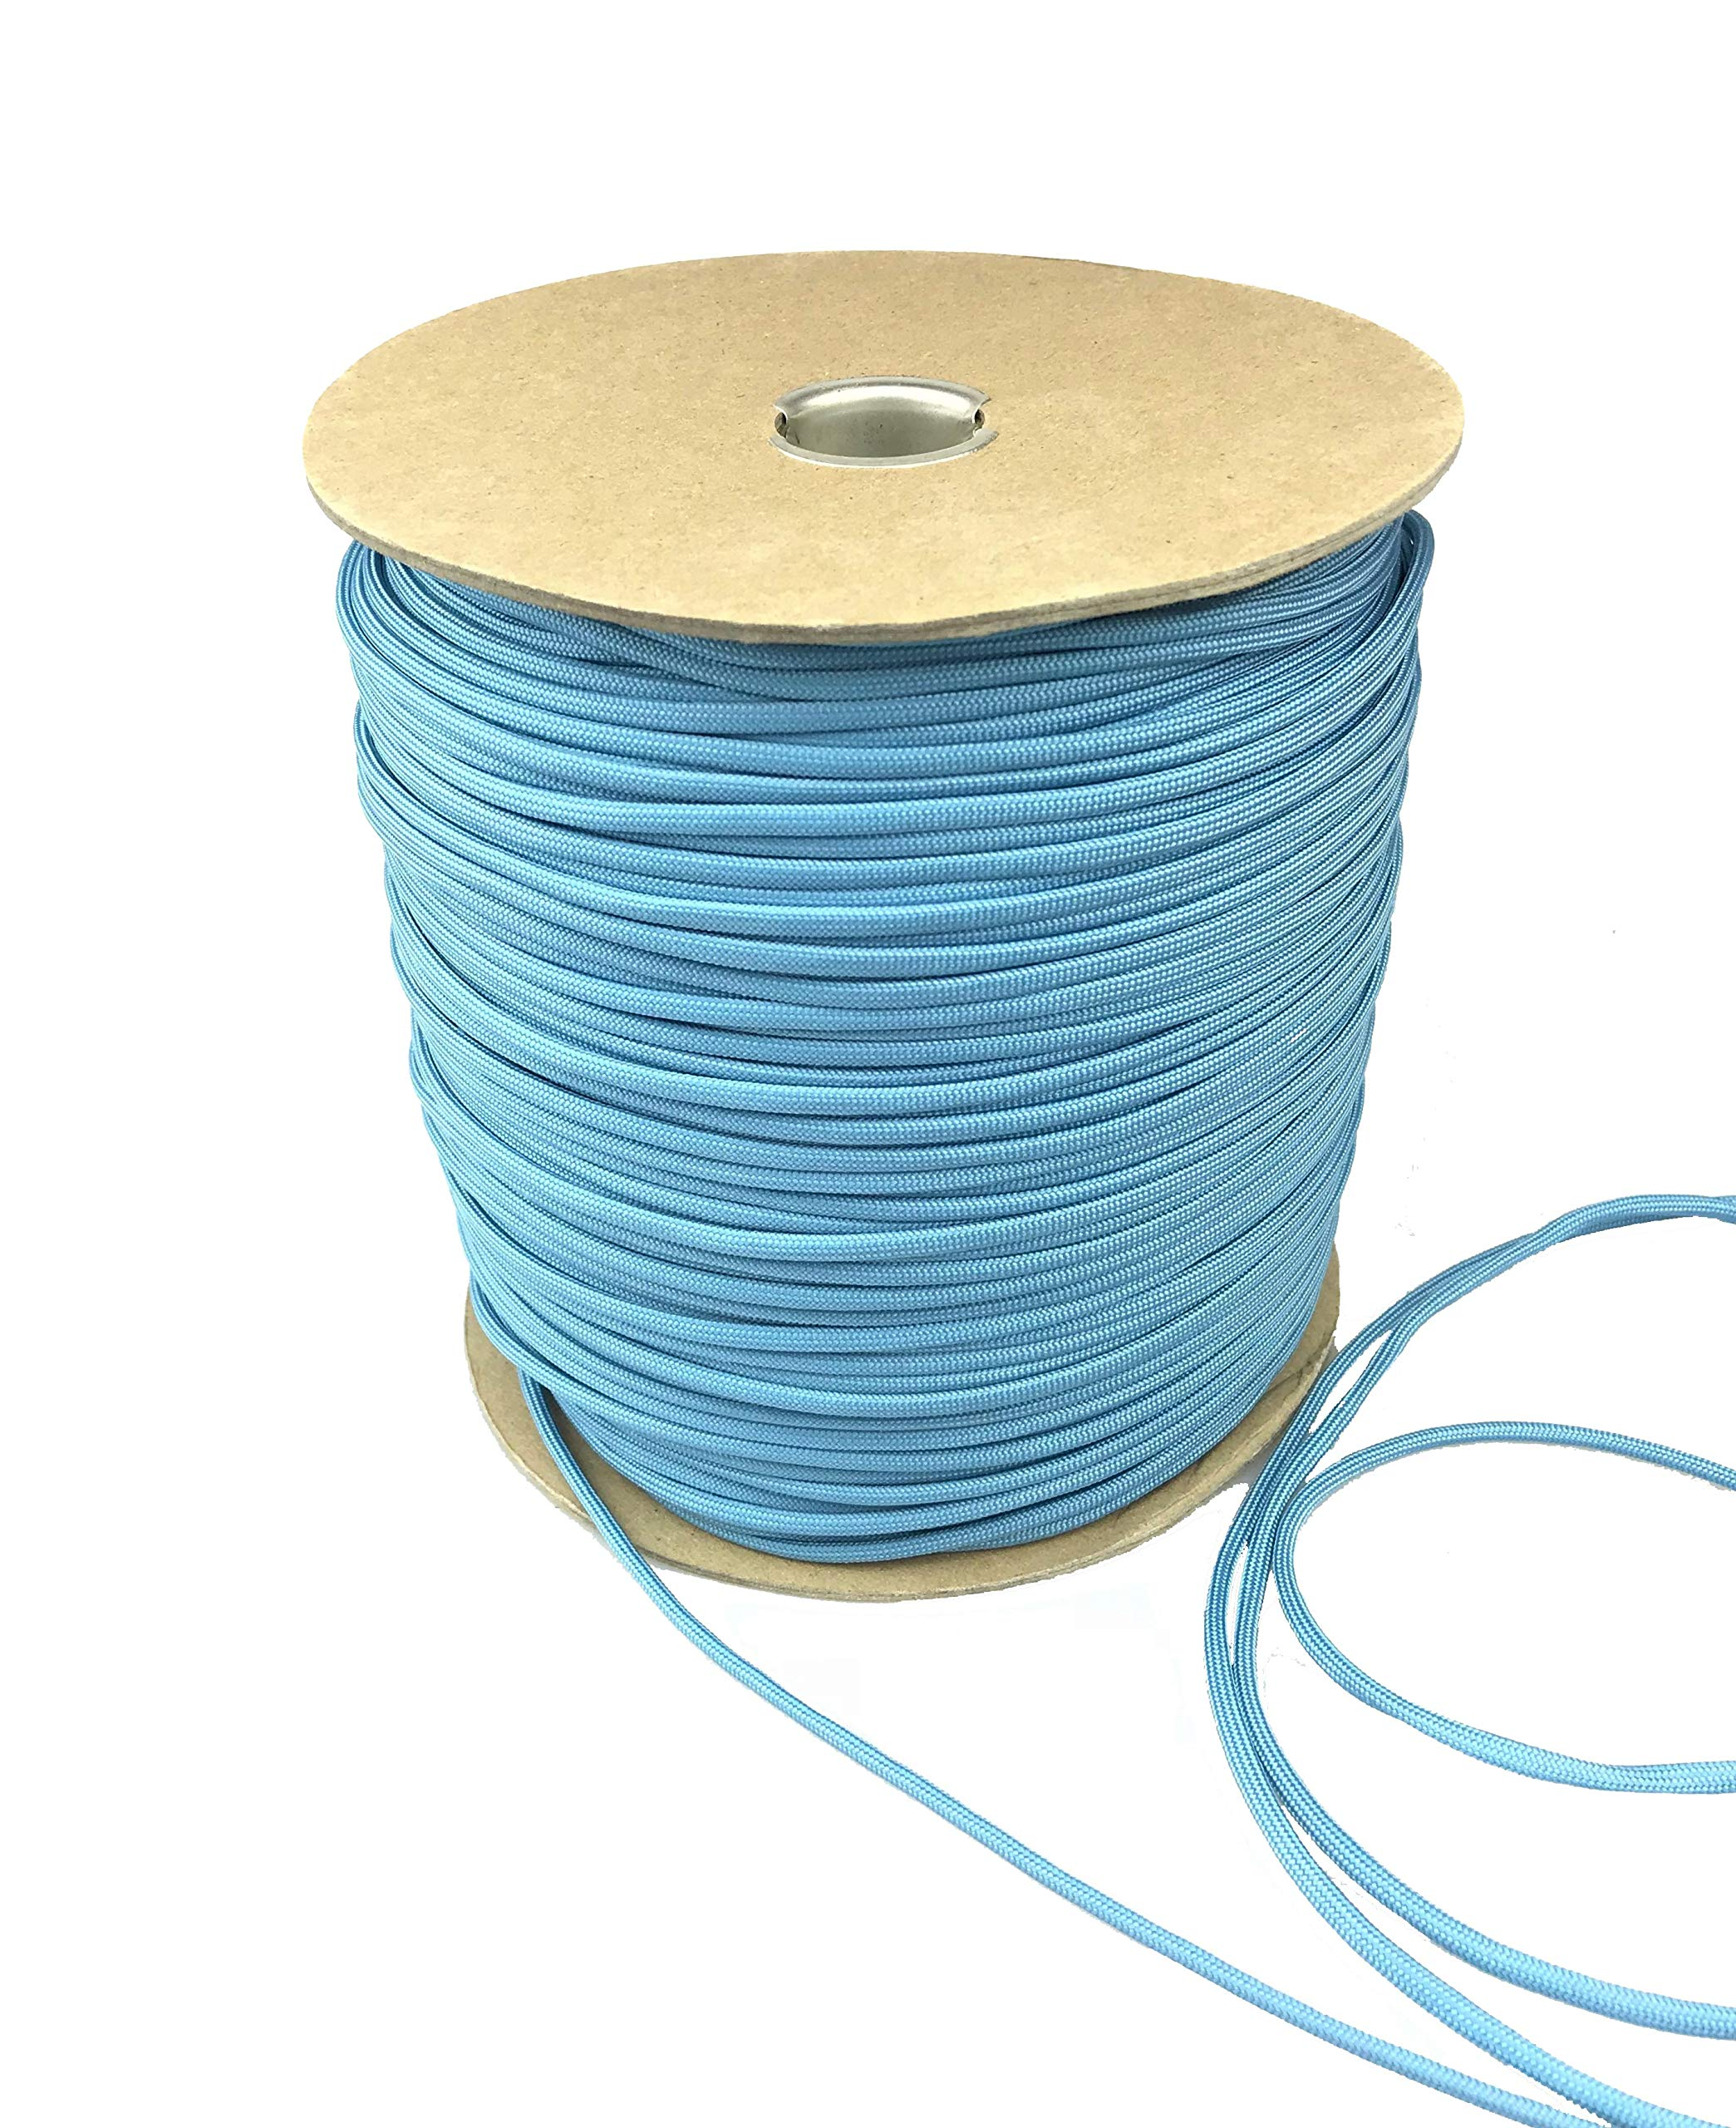 Paracord 550 Type III 7 Strand Multi-Purpose Parachute Cord in 1000 and 100 Foot Spools. Used for Camping, Hiking, Boating, Survival, and Crafting. 100% Nylon-Made in the USA (Light Blue, 1000.00)